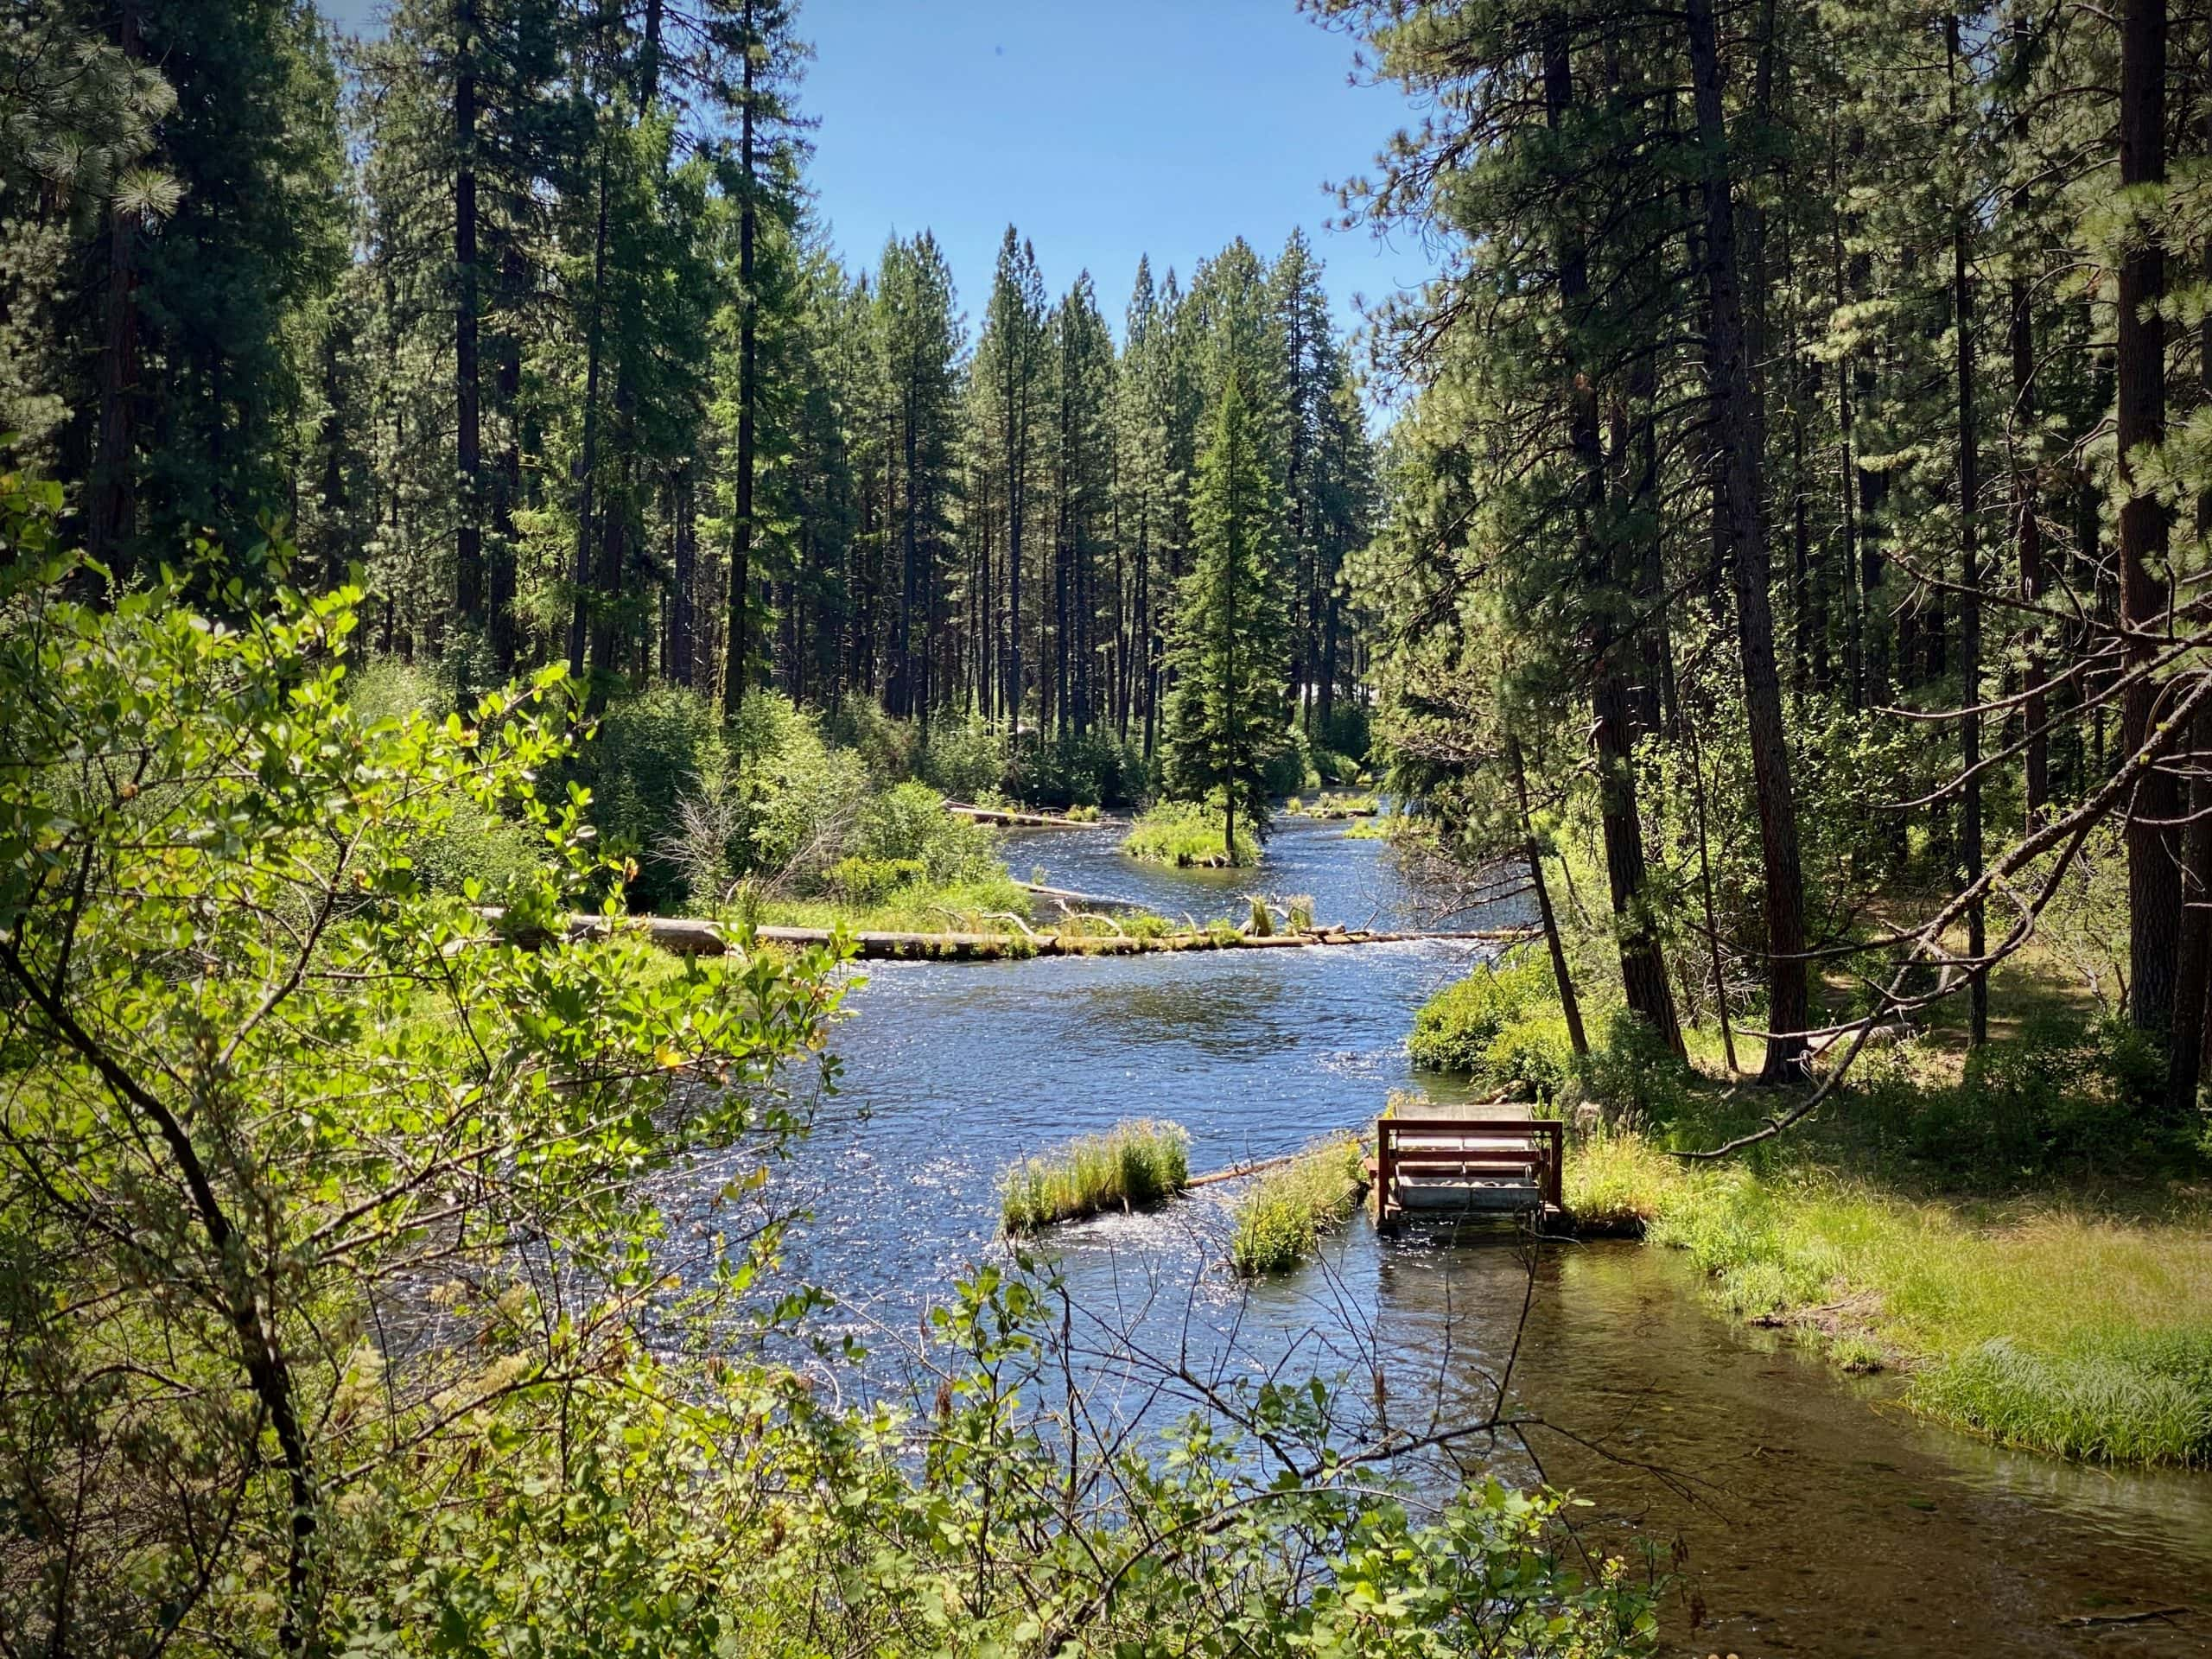 A view of the Metolius River just north of Camp Sherman, OR.